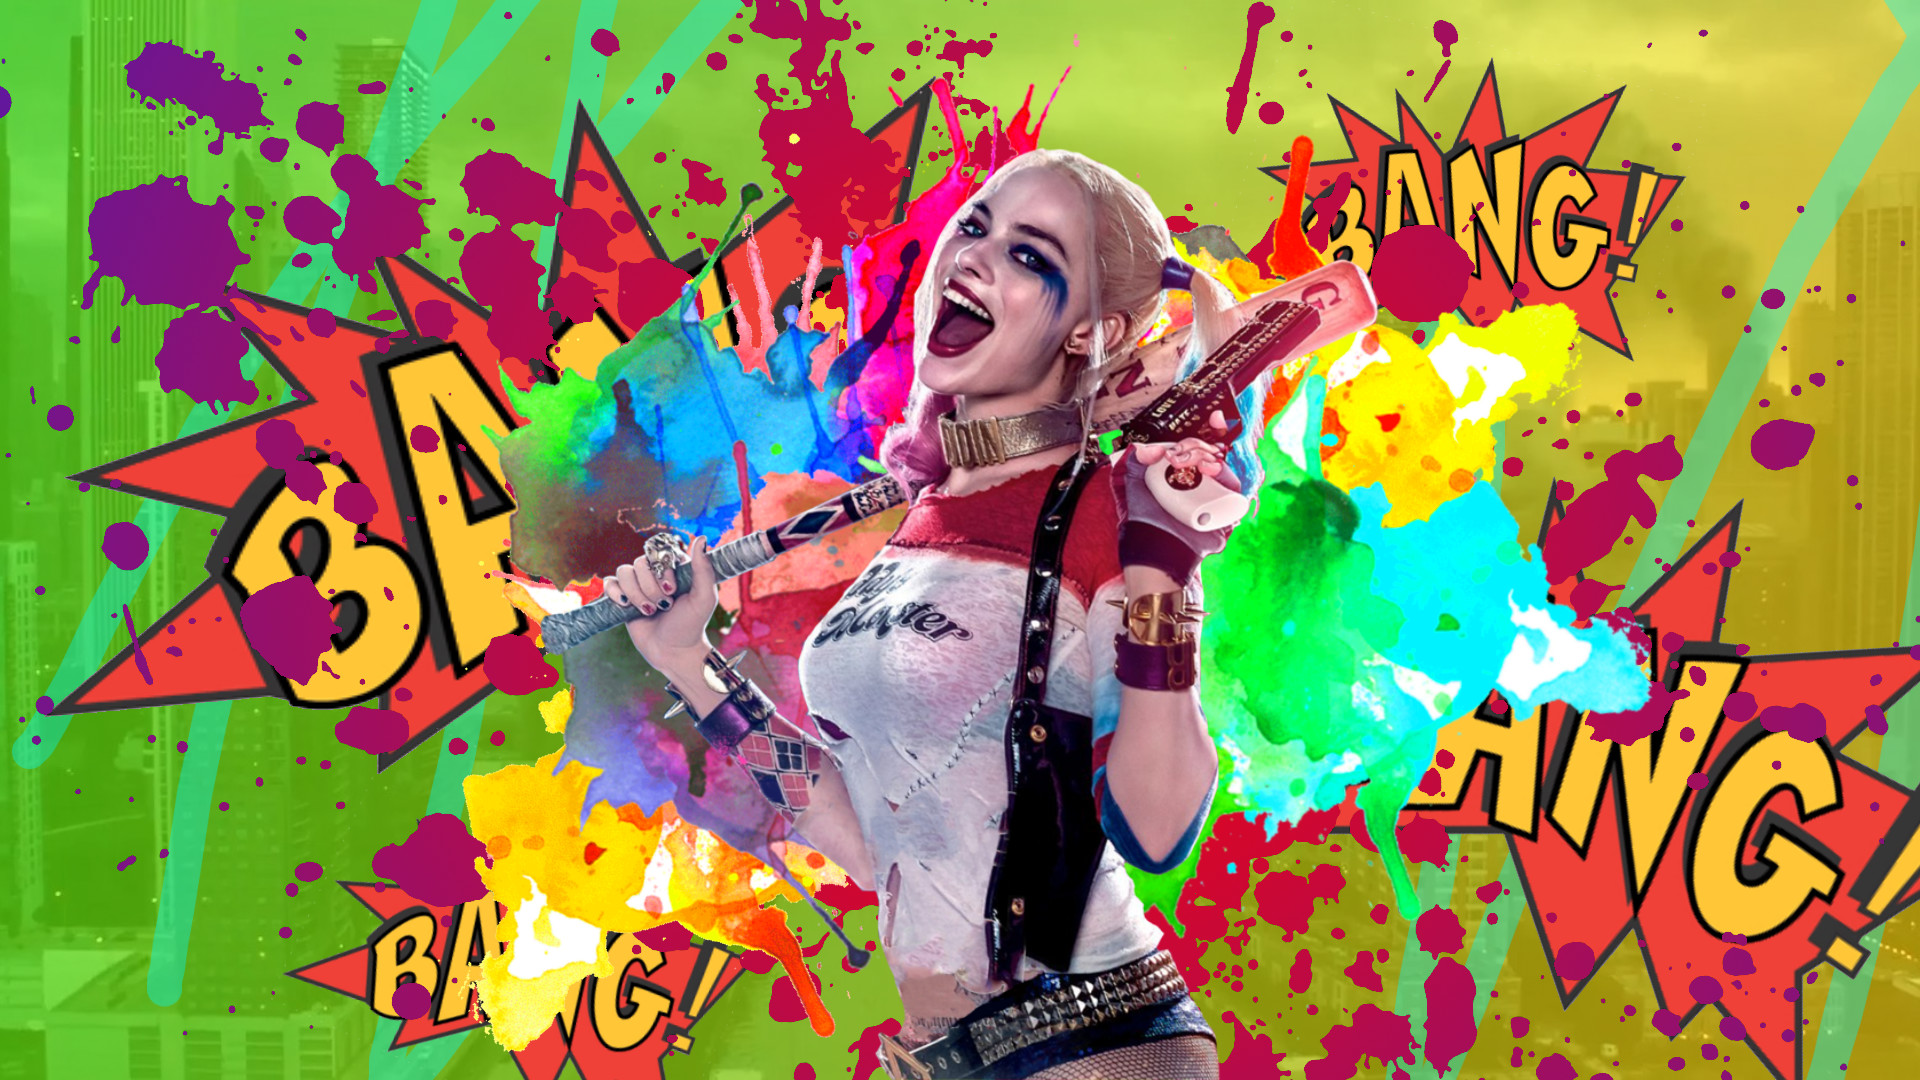 Suicide Squad Harley Quinn Wallpaper by KryptixDesigns Suicide Squad Harley  Quinn Wallpaper by KryptixDesigns